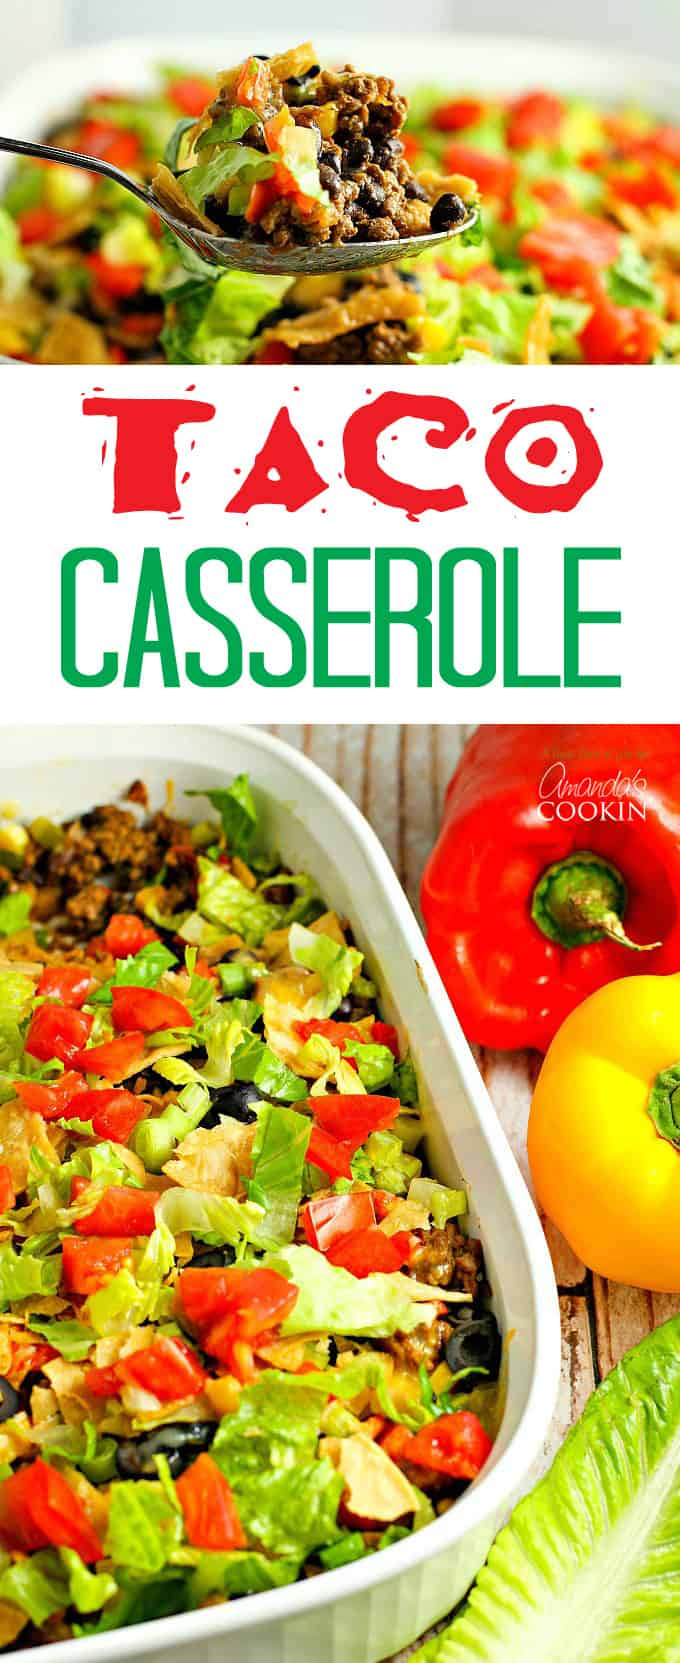 This delicious and hearty taco casserole will quickly become a family favorite. Seasoned beef, tasty beans, melty cheese and salsa with just enough chips!